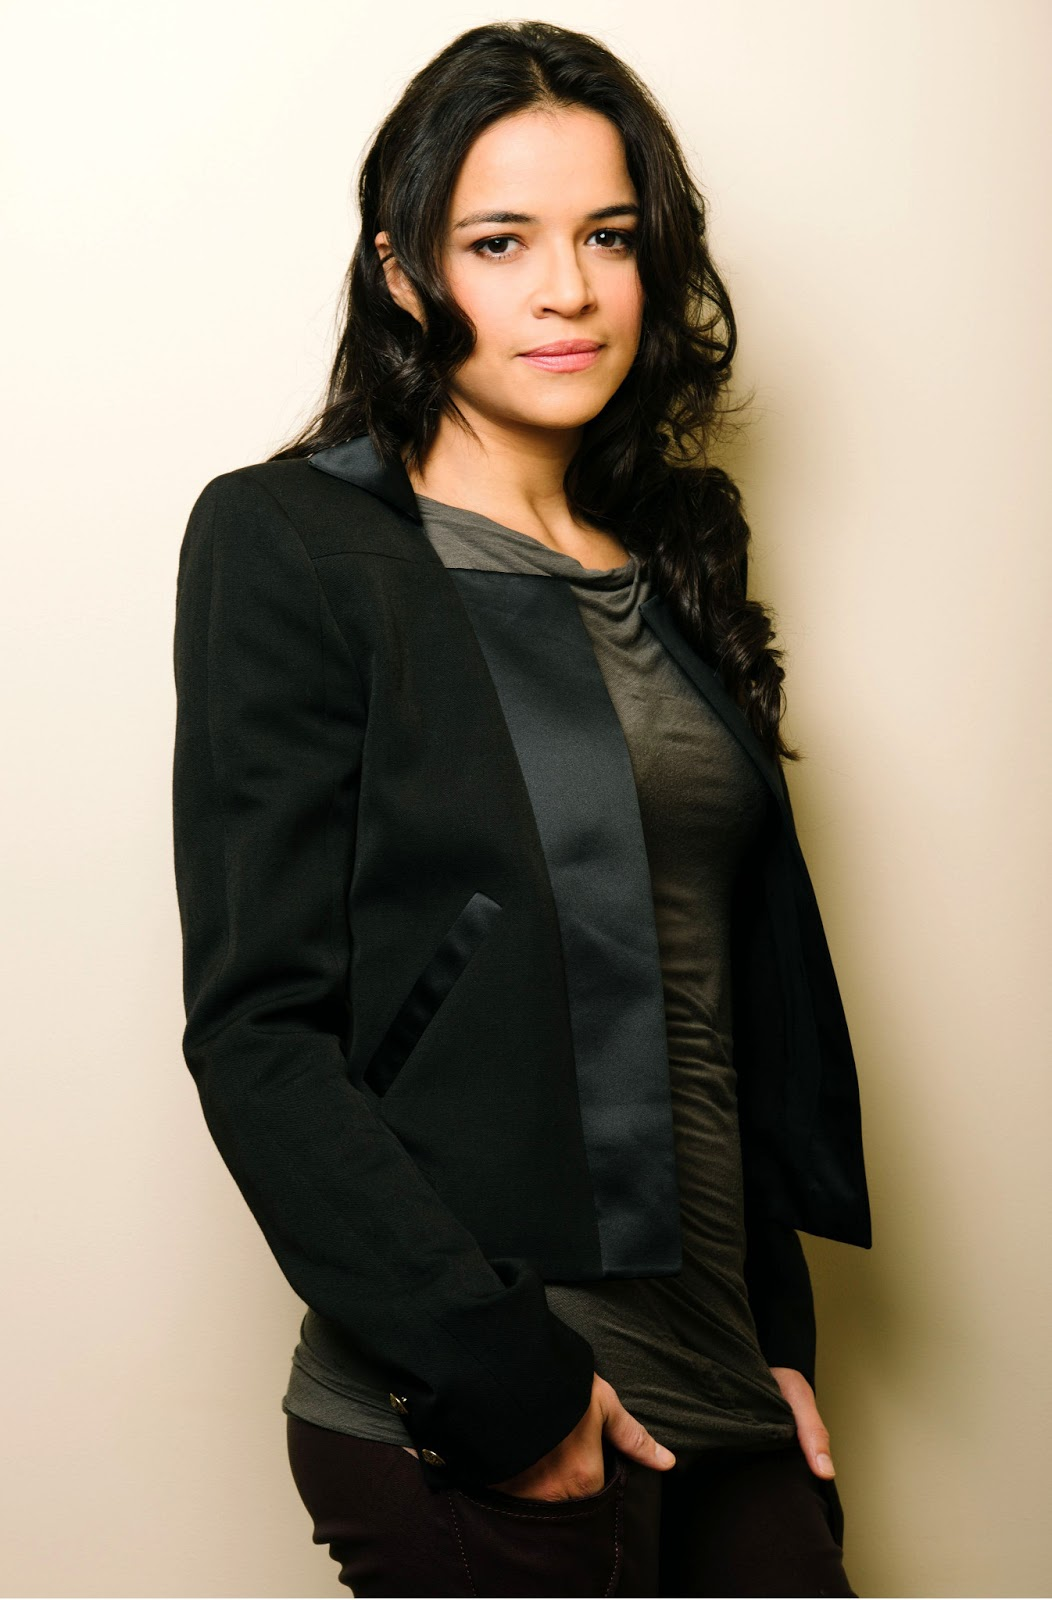 Michelle Rodriguez pictures gallery (3) | Film Actresses K Michelle 2013 Photoshoot